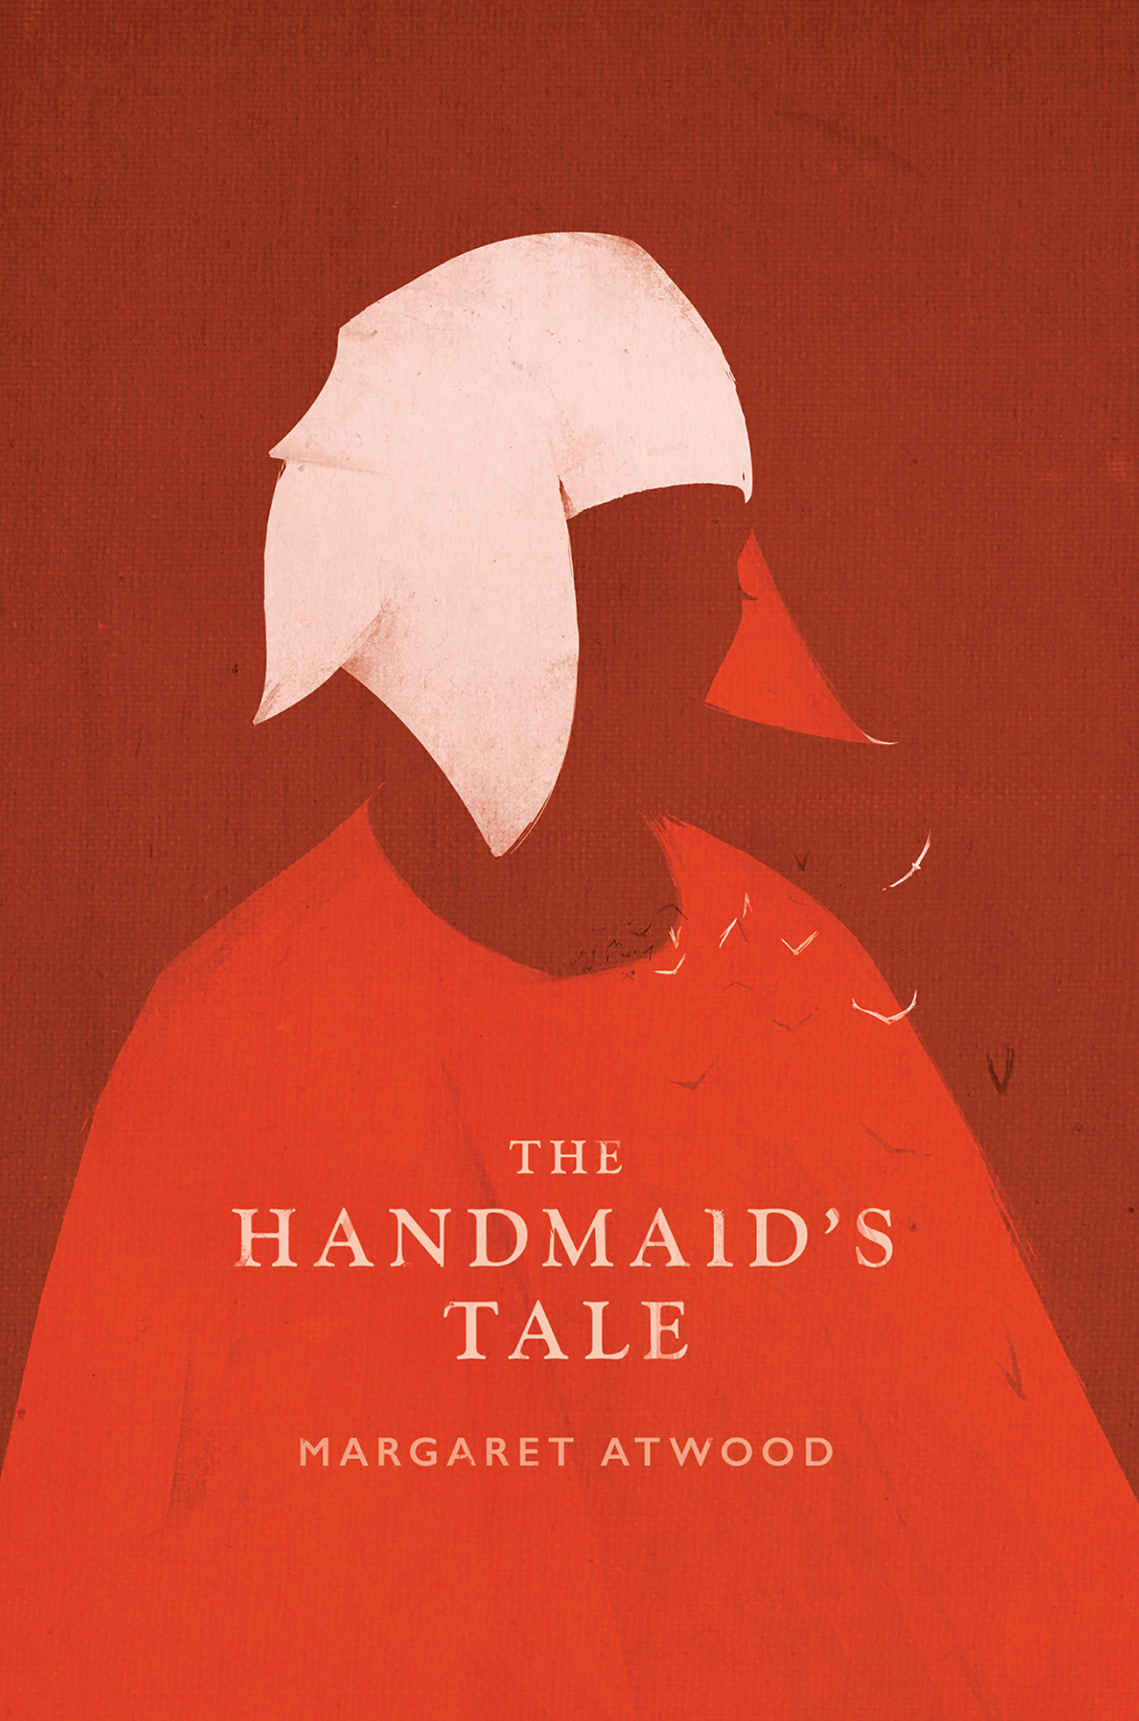 The Handmaid's Tale - Margaret Atwood [kindle] [mobi]